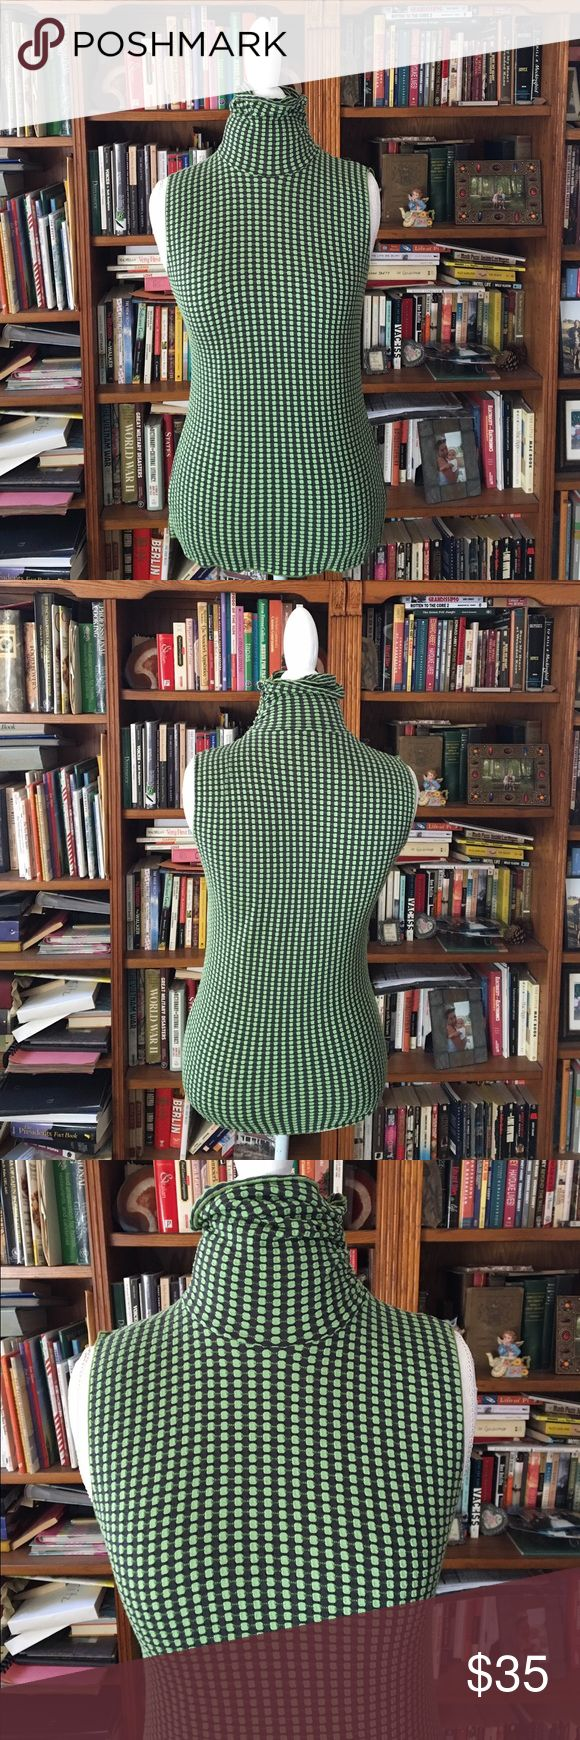 Viscose Wool Blend ARMANI Sleeveless Turtleneck Excellent condition Armani Collezioni Sleeveless Turtleneck top. Shown on size 8 dress form. Zip neck. Color is a dark grey almost black and green Armani Collezioni Tops